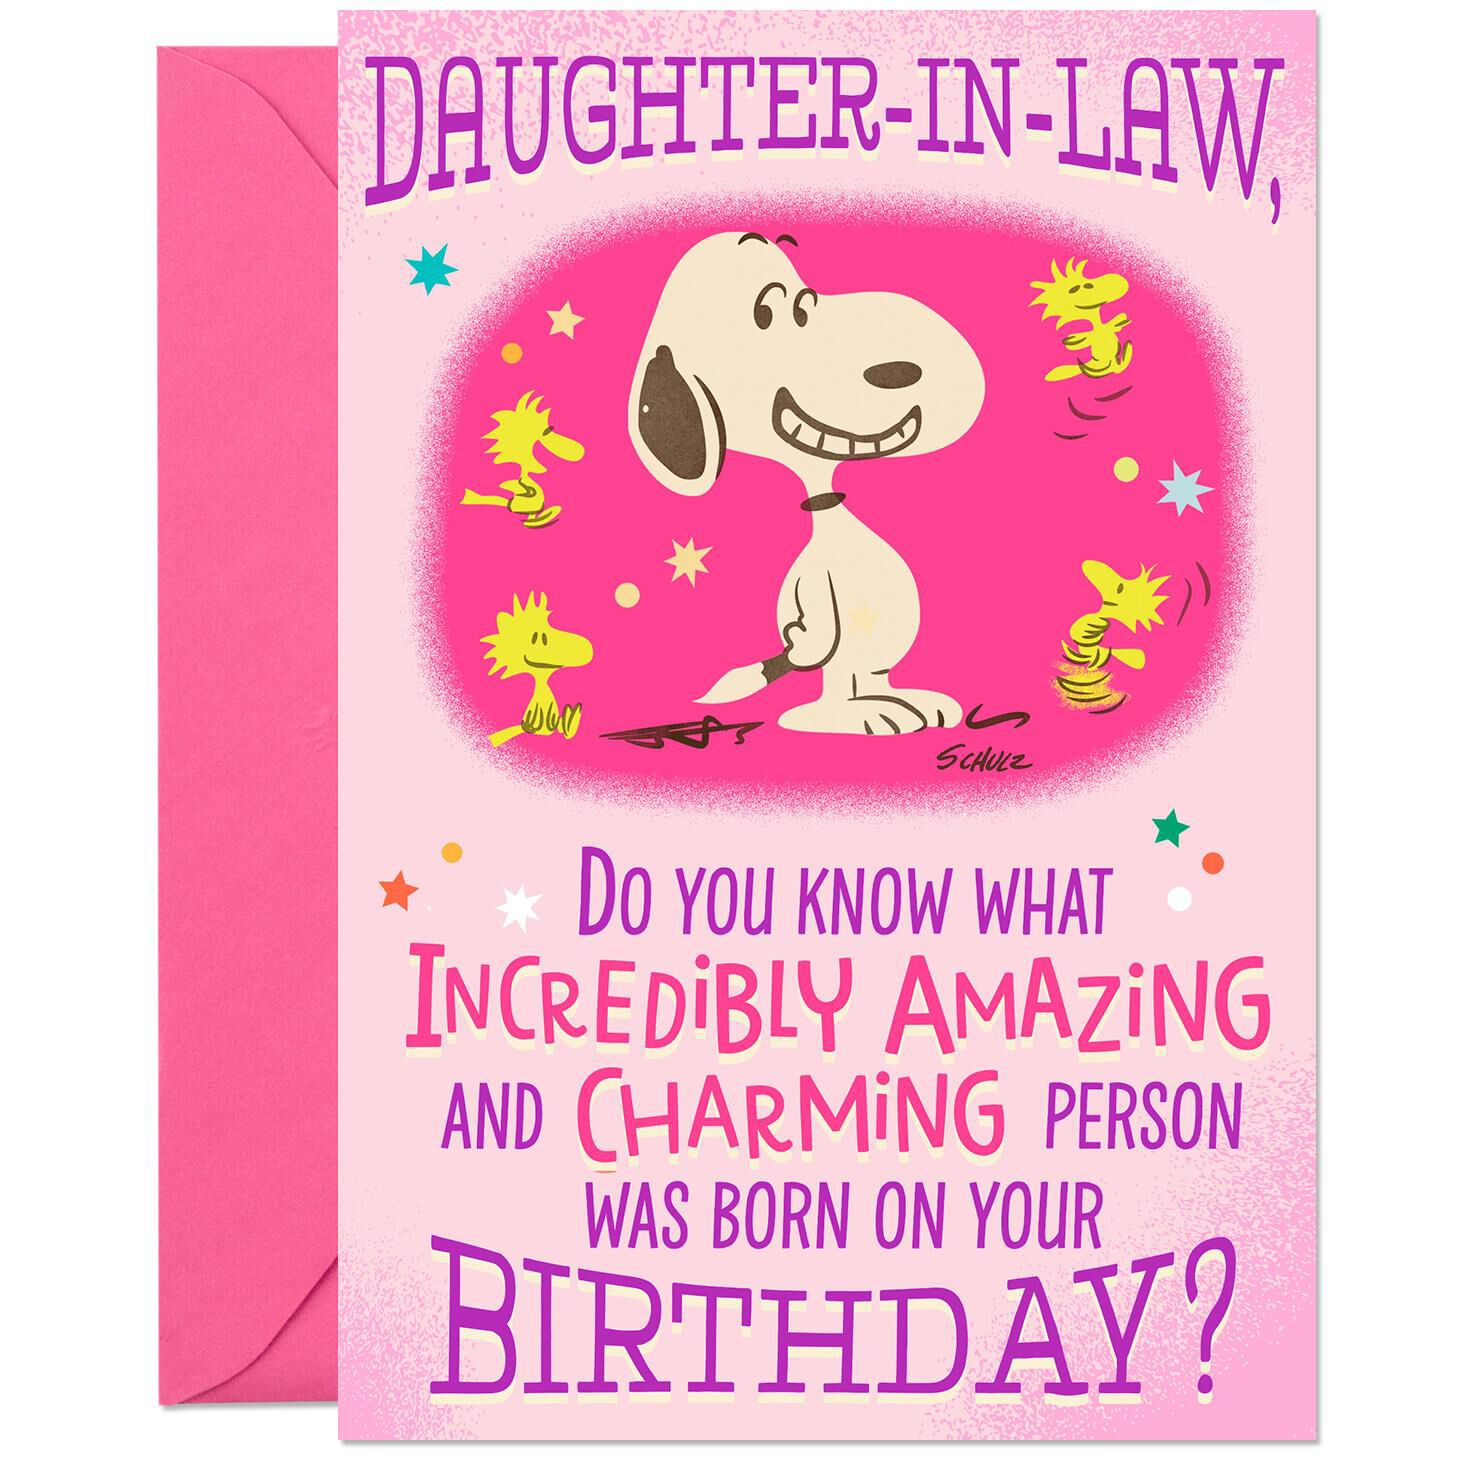 Peanuts Snoopy And Woodstock Pop Up Birthday Card For Daughter In